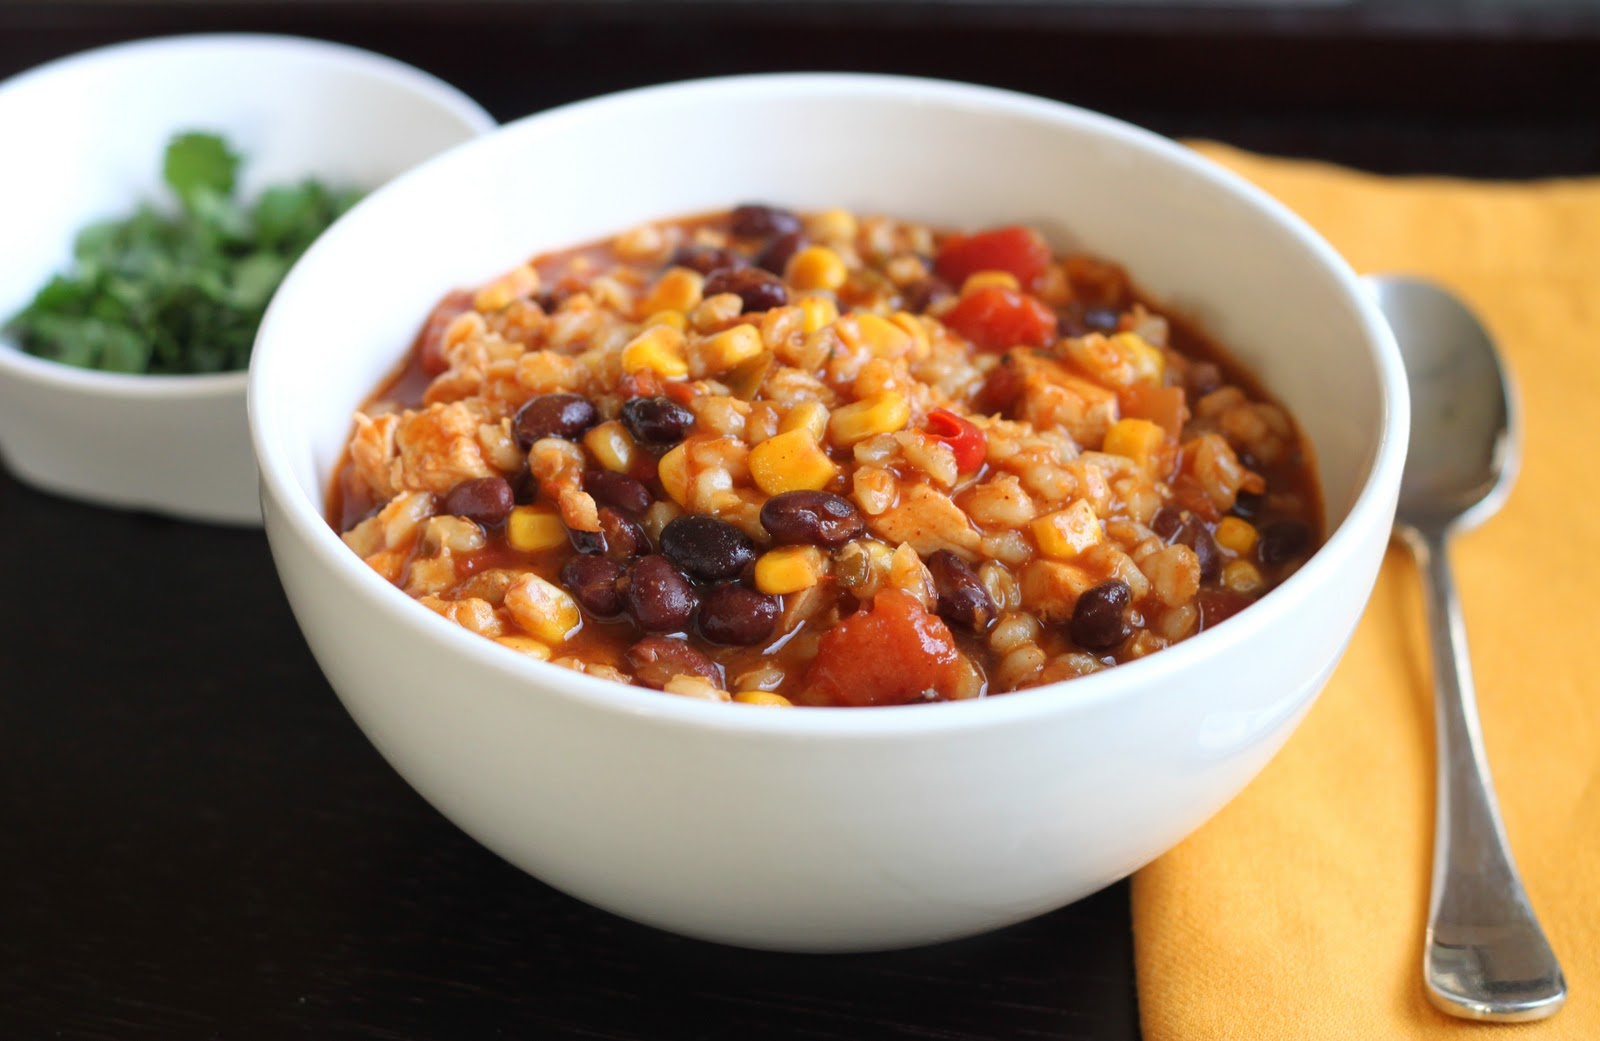 Chicken and Barley Chili